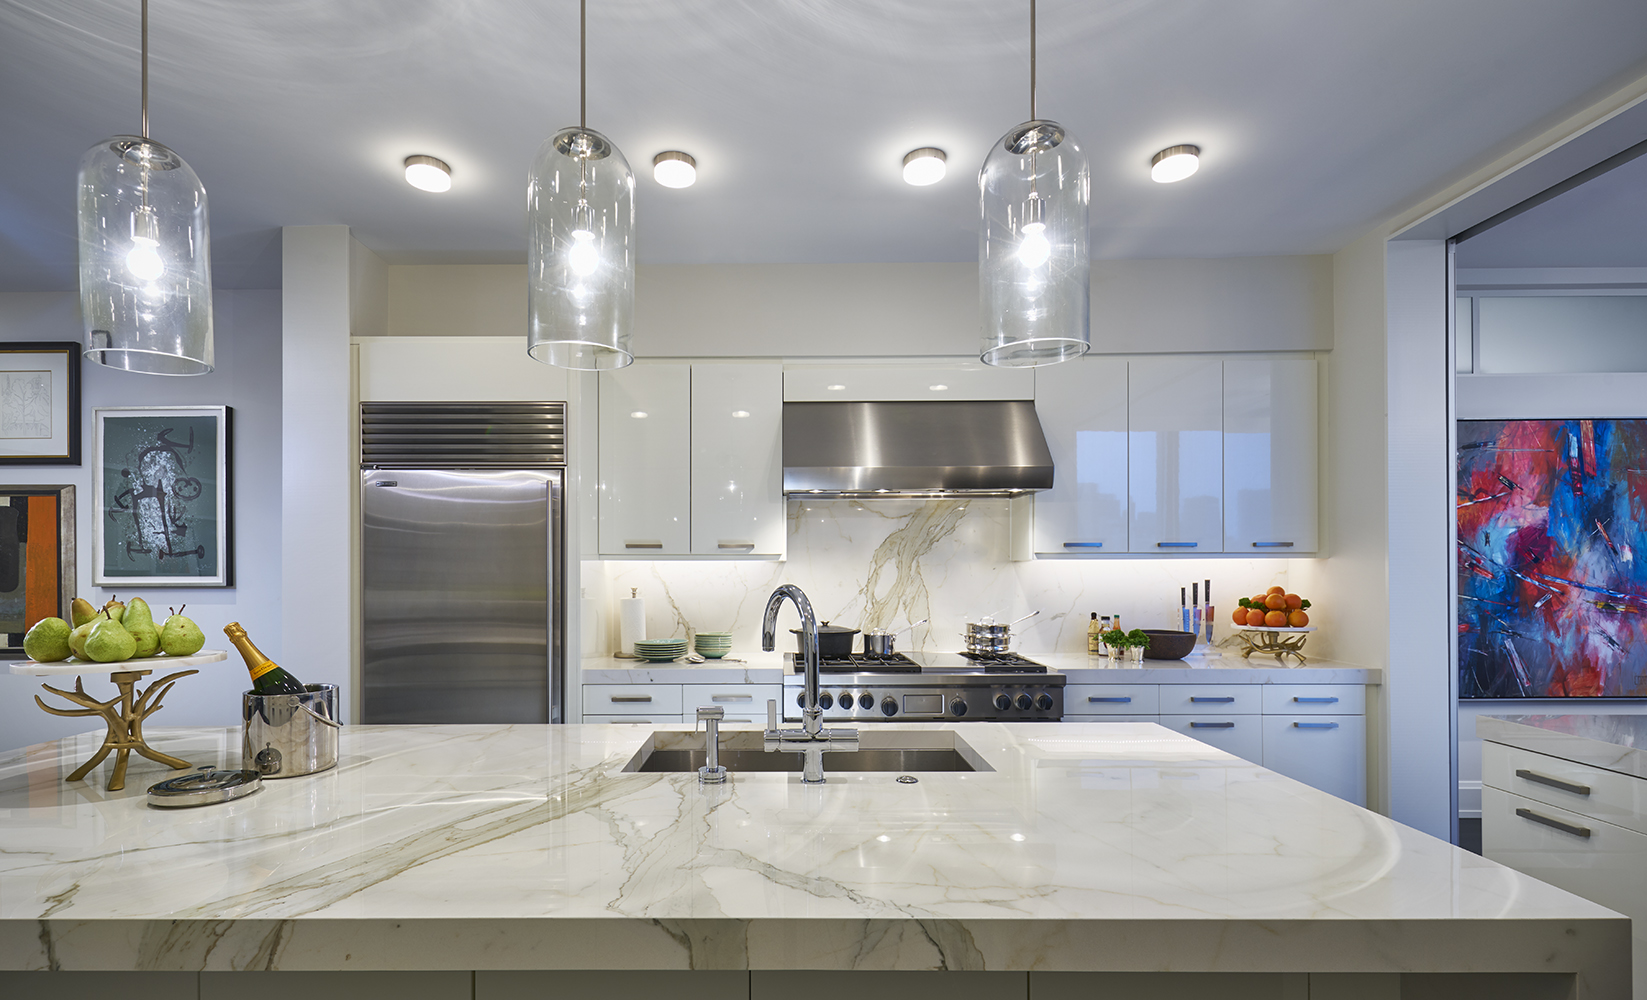 Three custom glass light fixtures from New Metal Crafts wash the island in light.